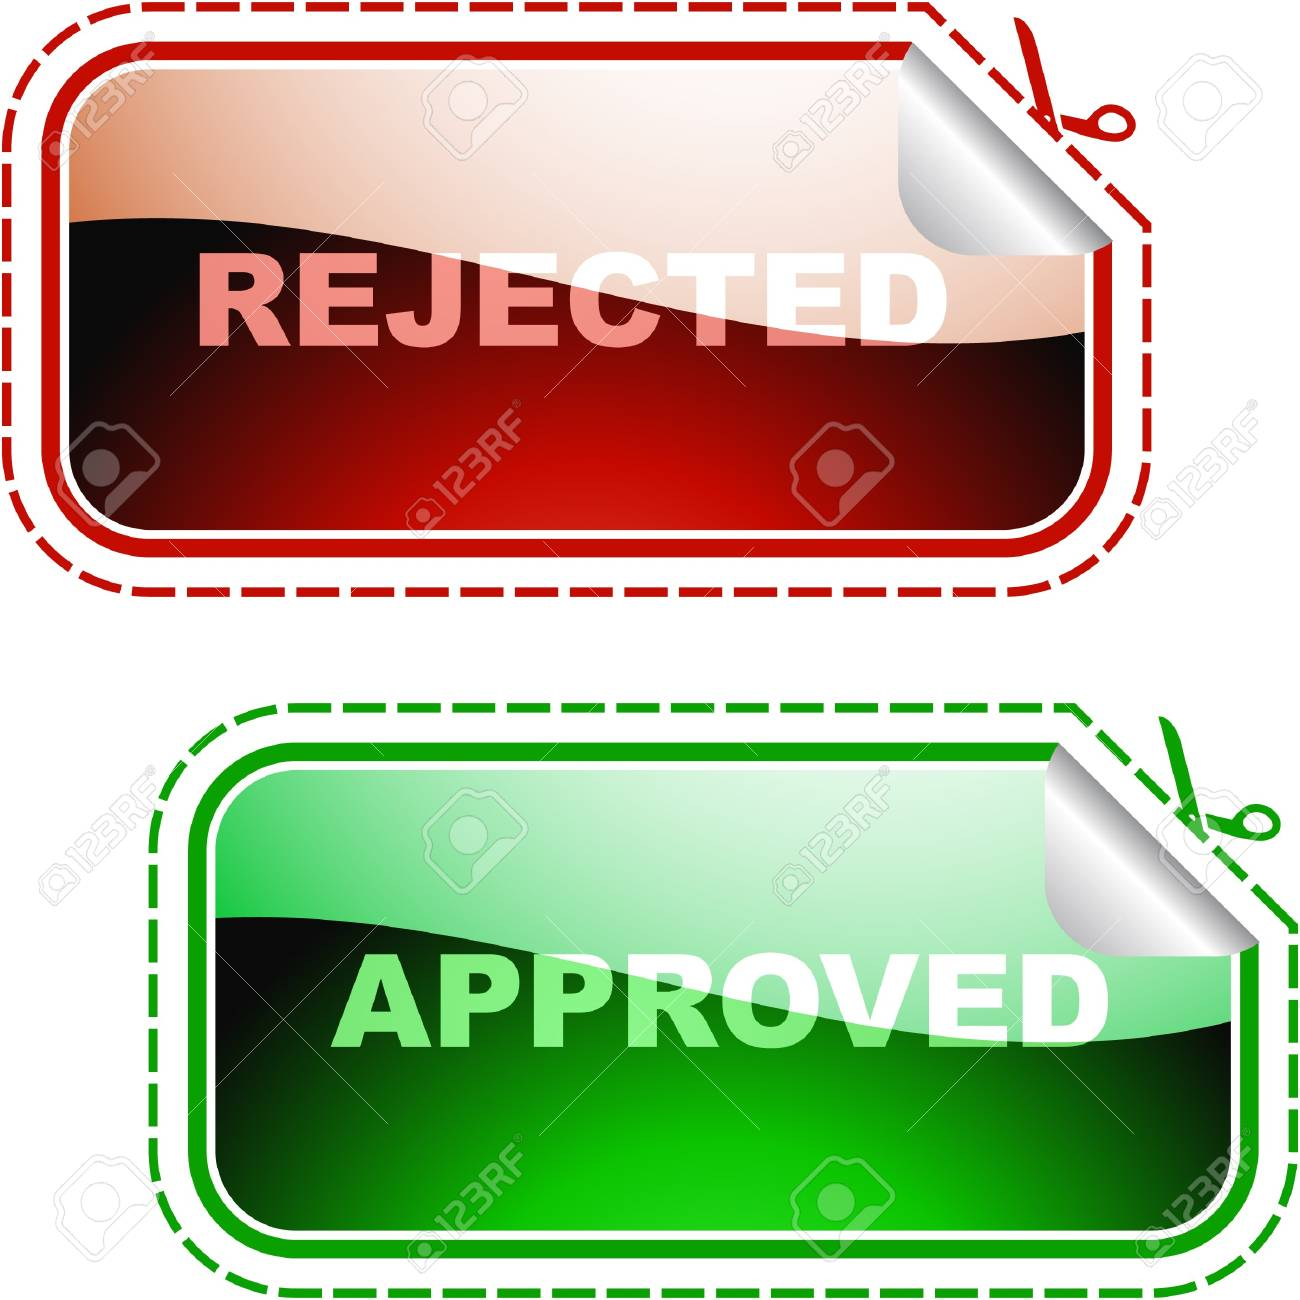 Approved and rejected elements. Stock Photo - 8238186